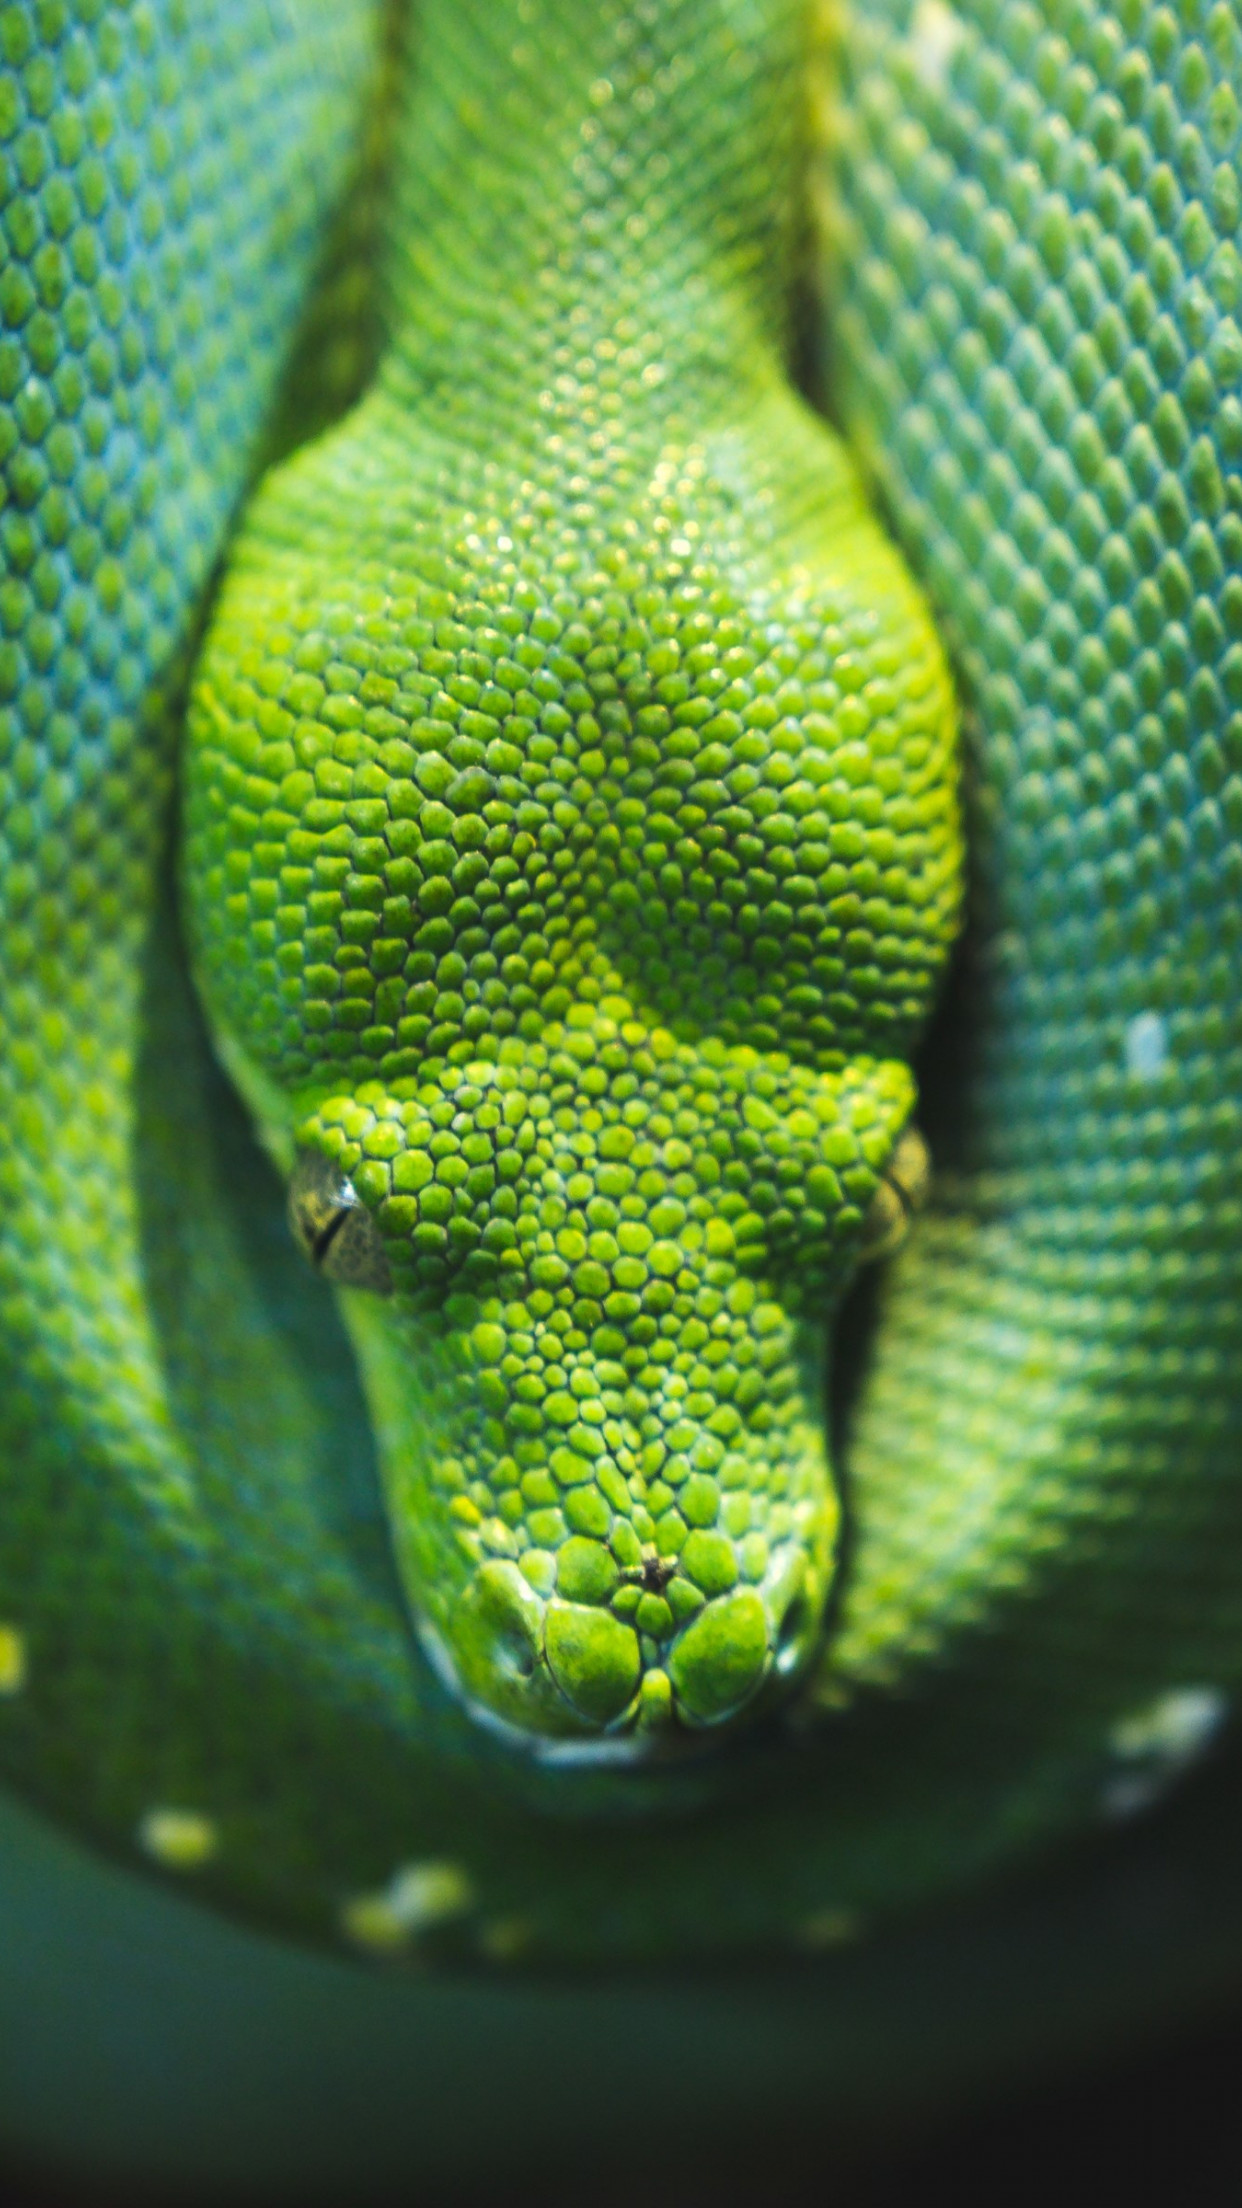 Green Tree snake python wallpaper 1242x2208